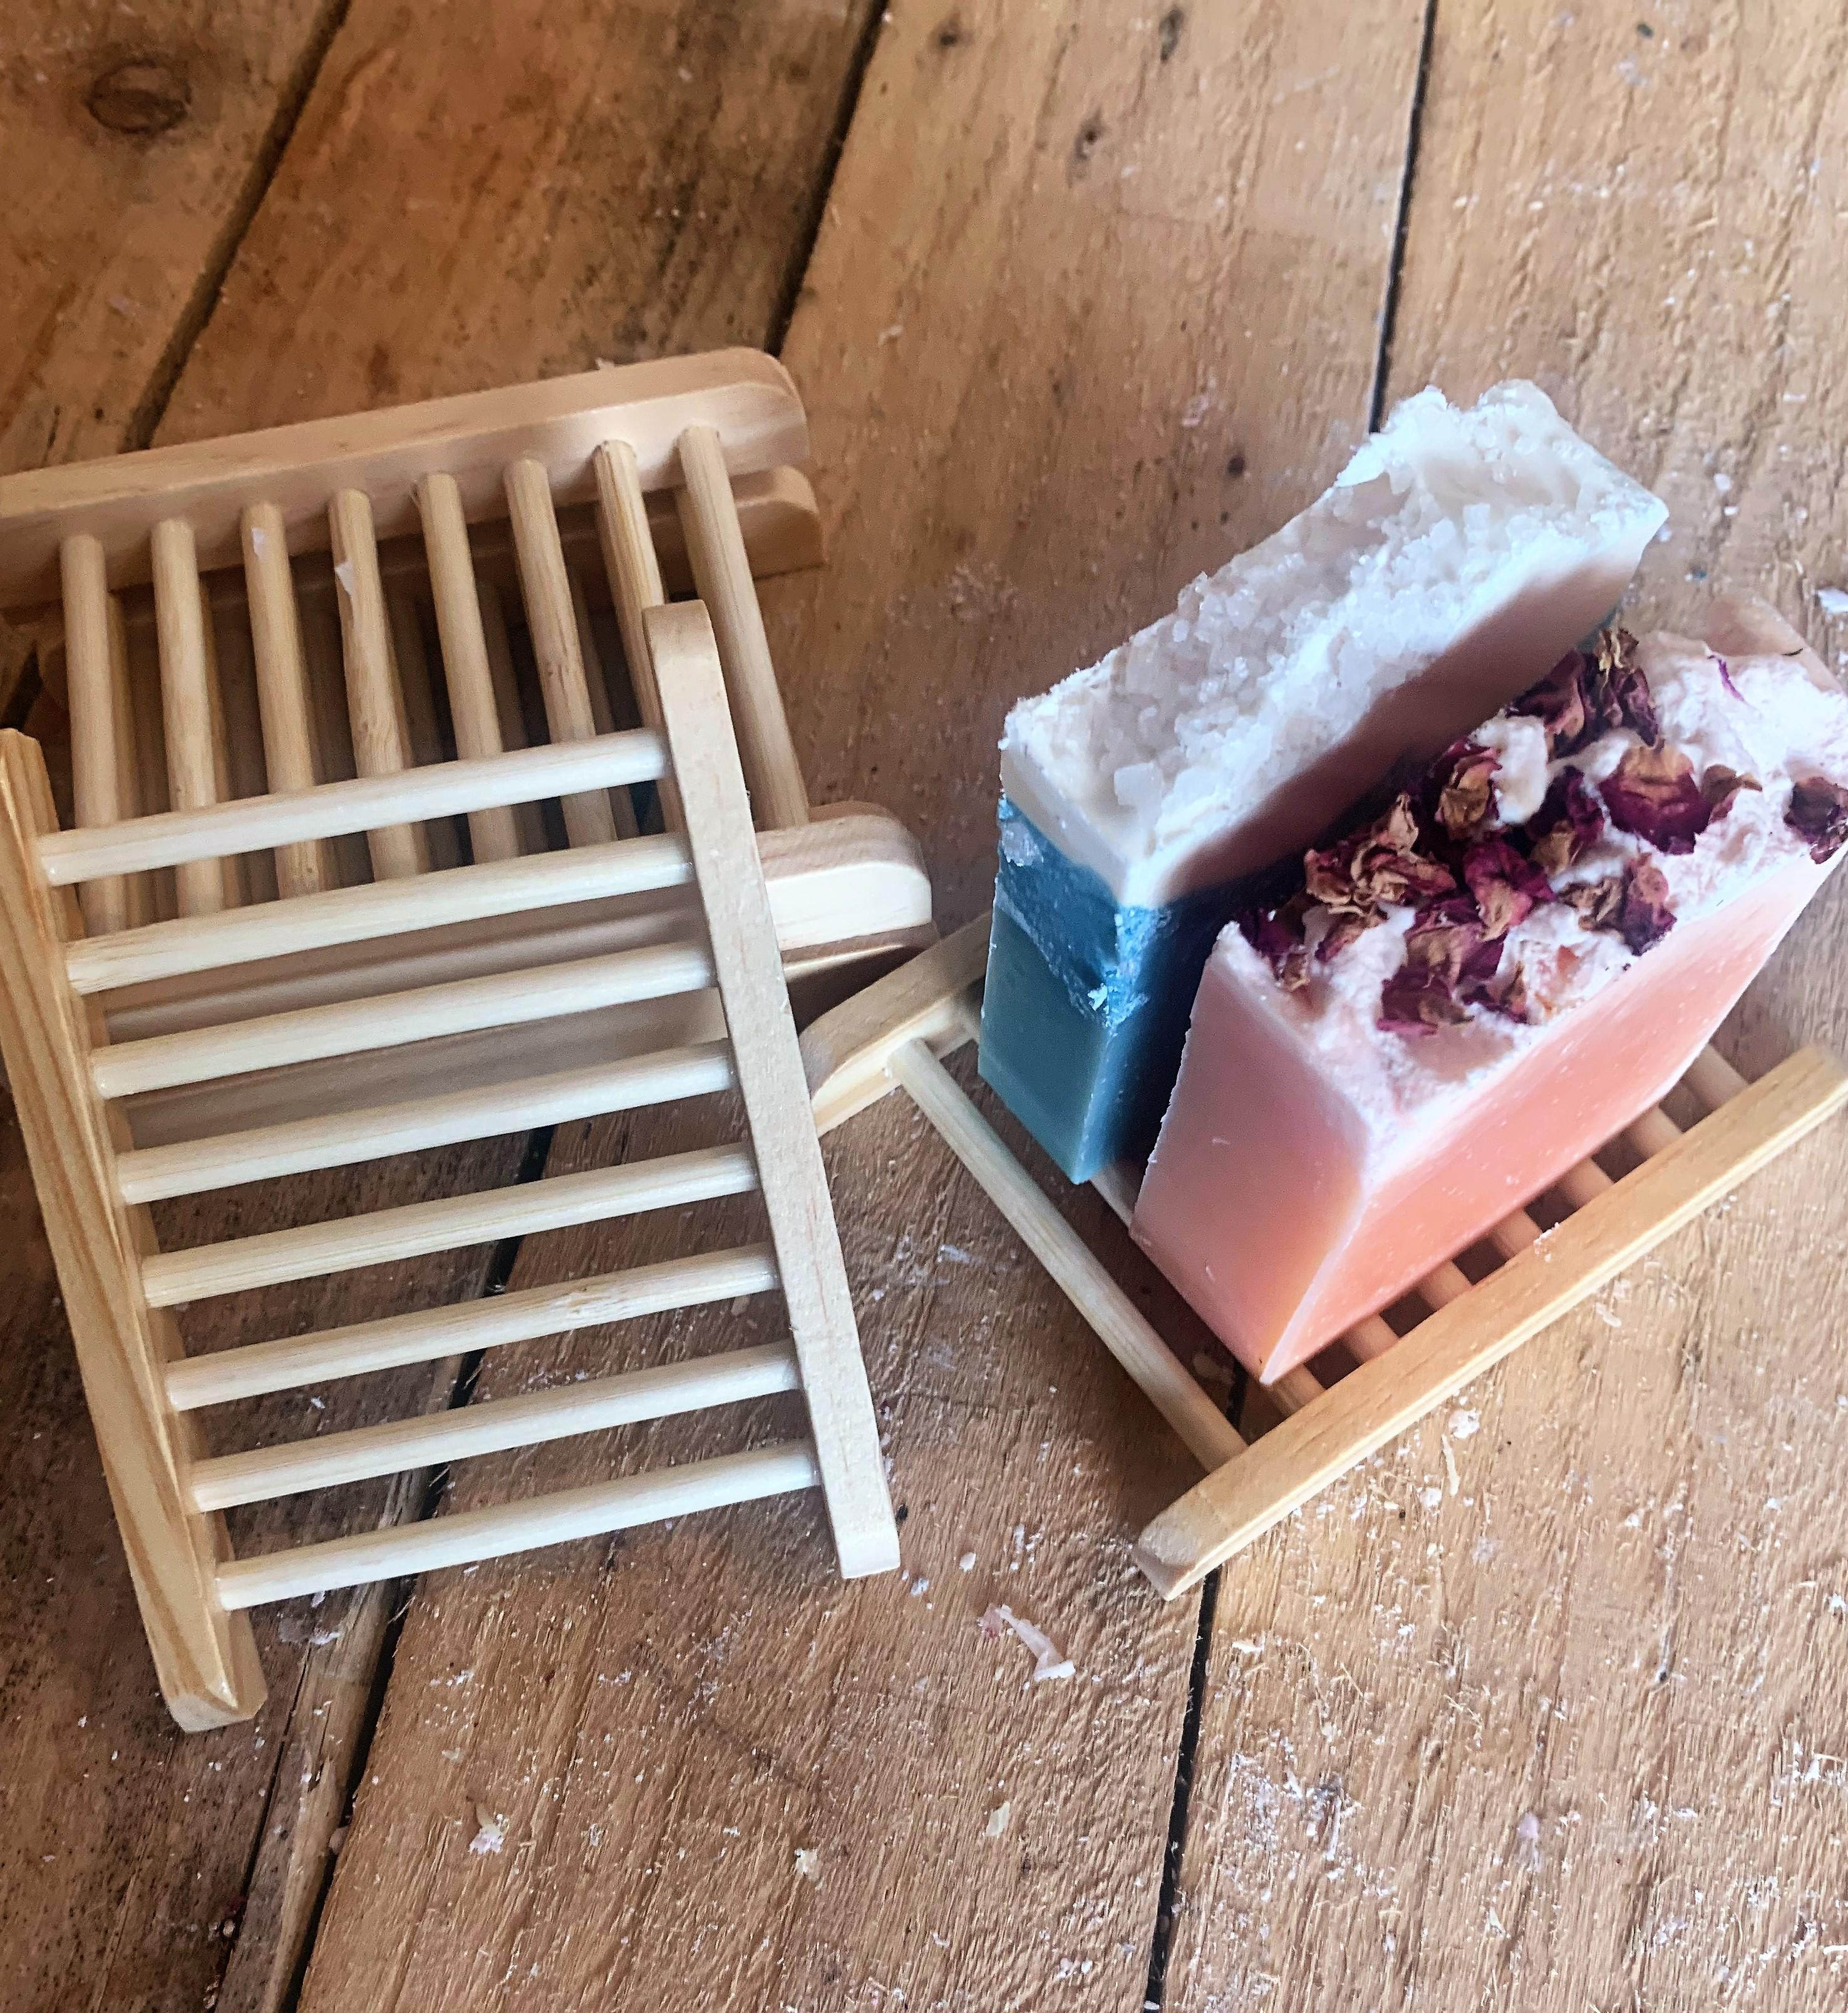 Bamboo Soap Rack with Vegan Soaps